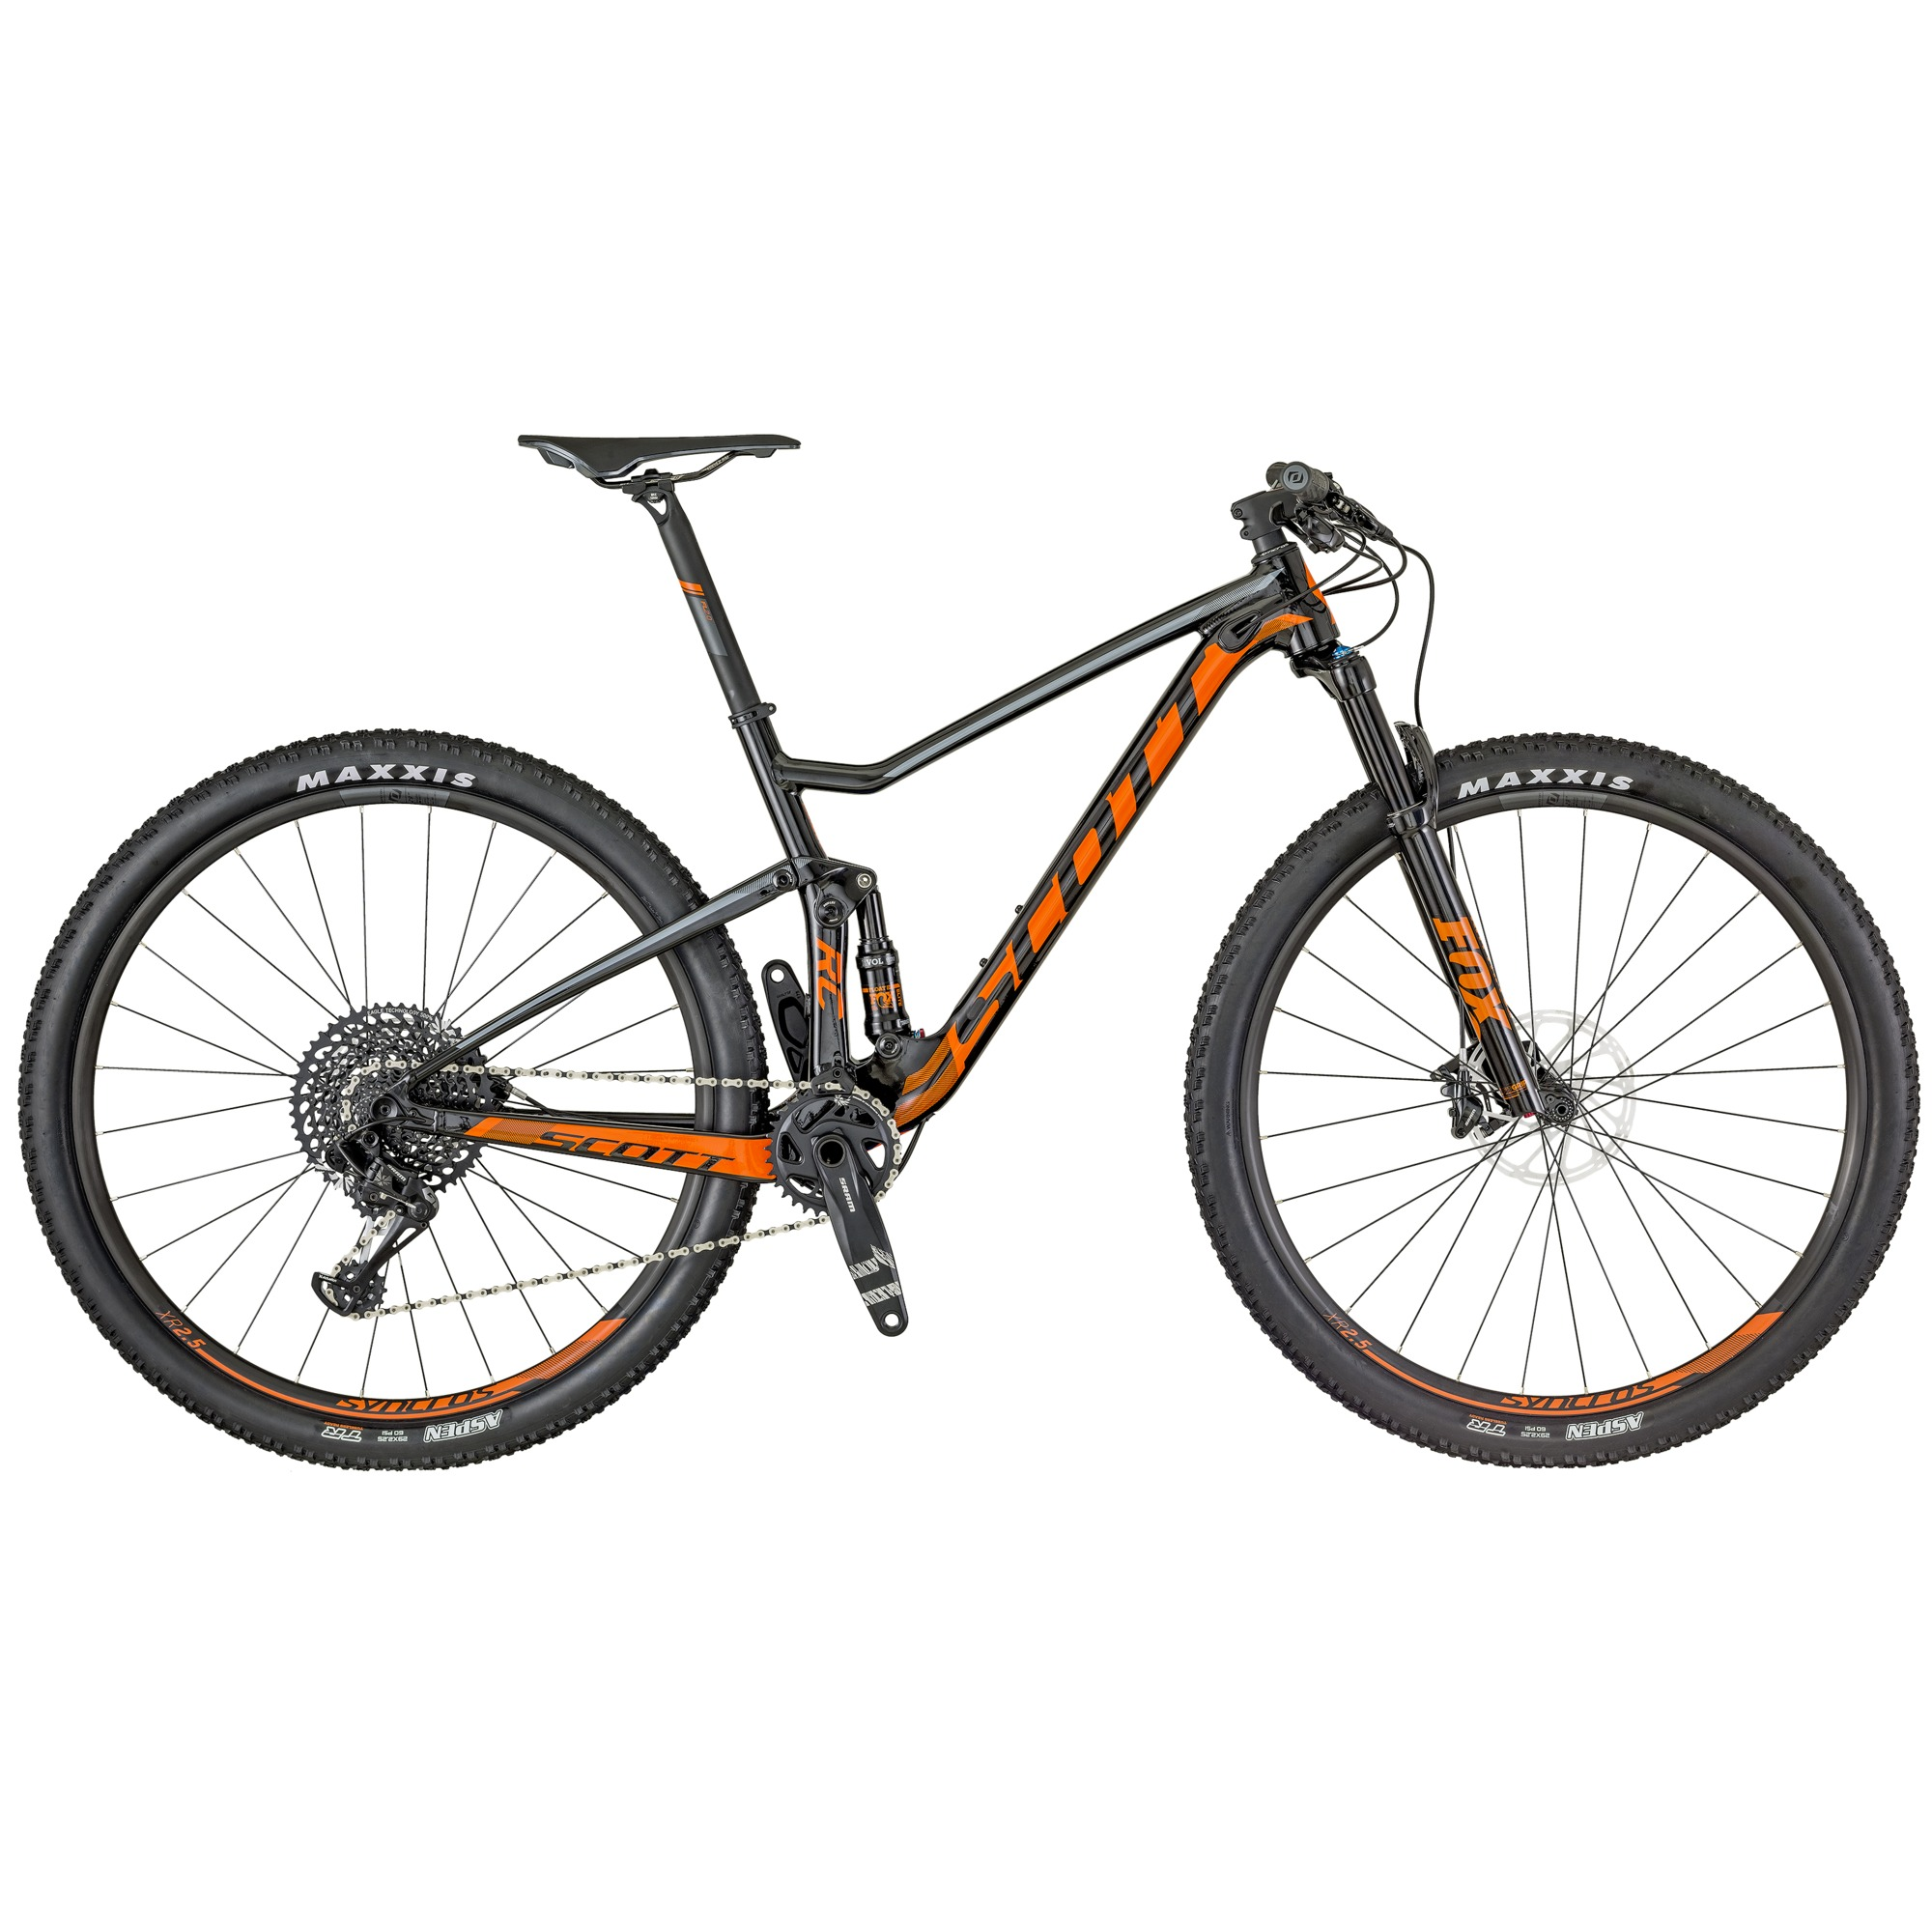 SCOTT SPARK RC 900 COMP BIKE Image